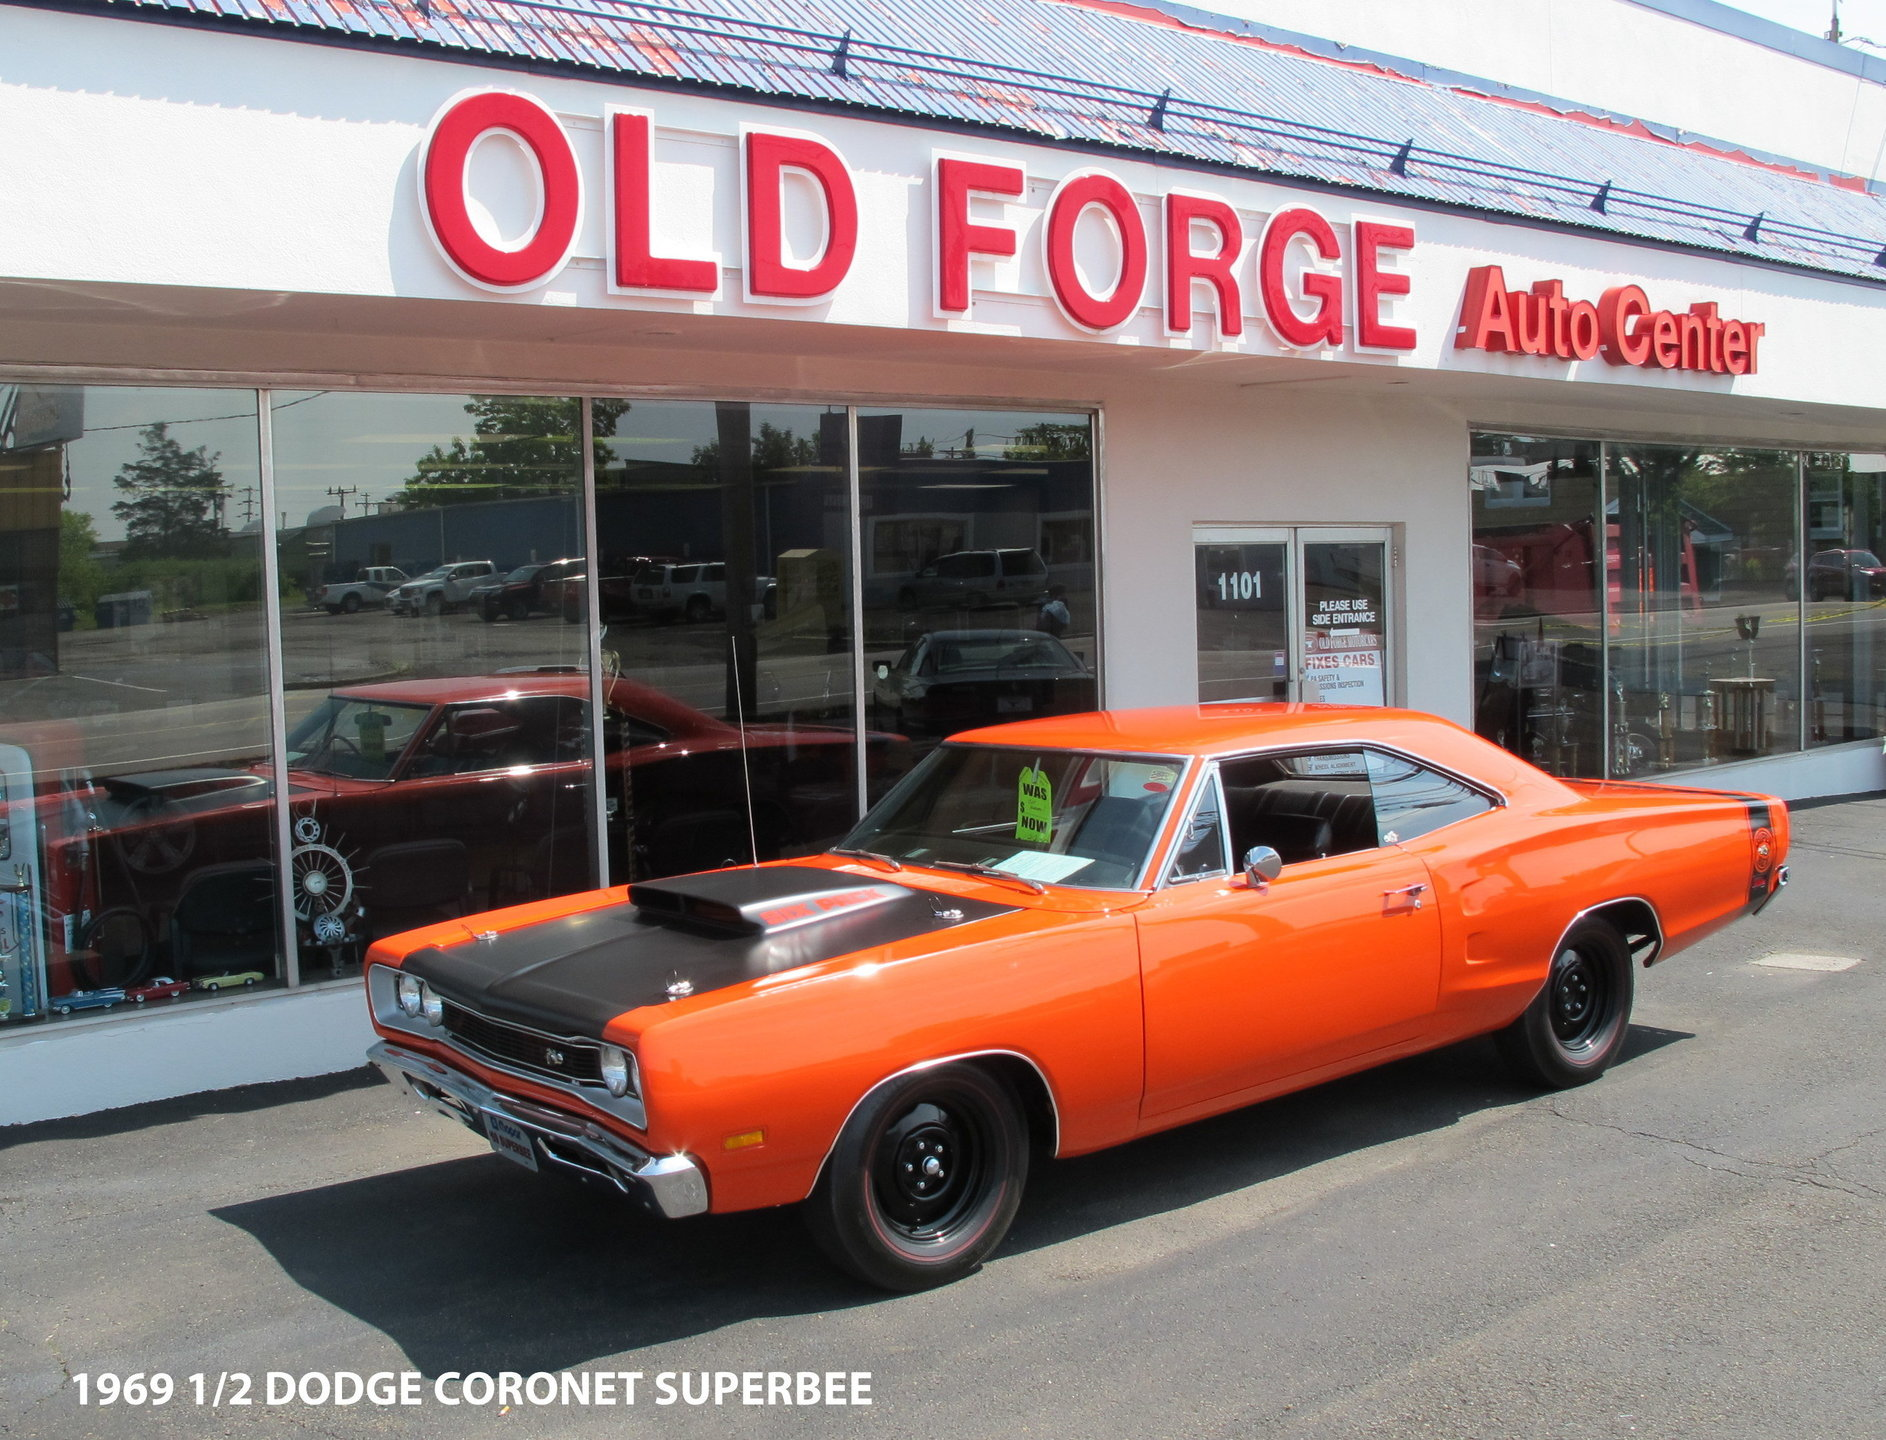 227501efa0e0e hd 1969 dodge coronet superbee